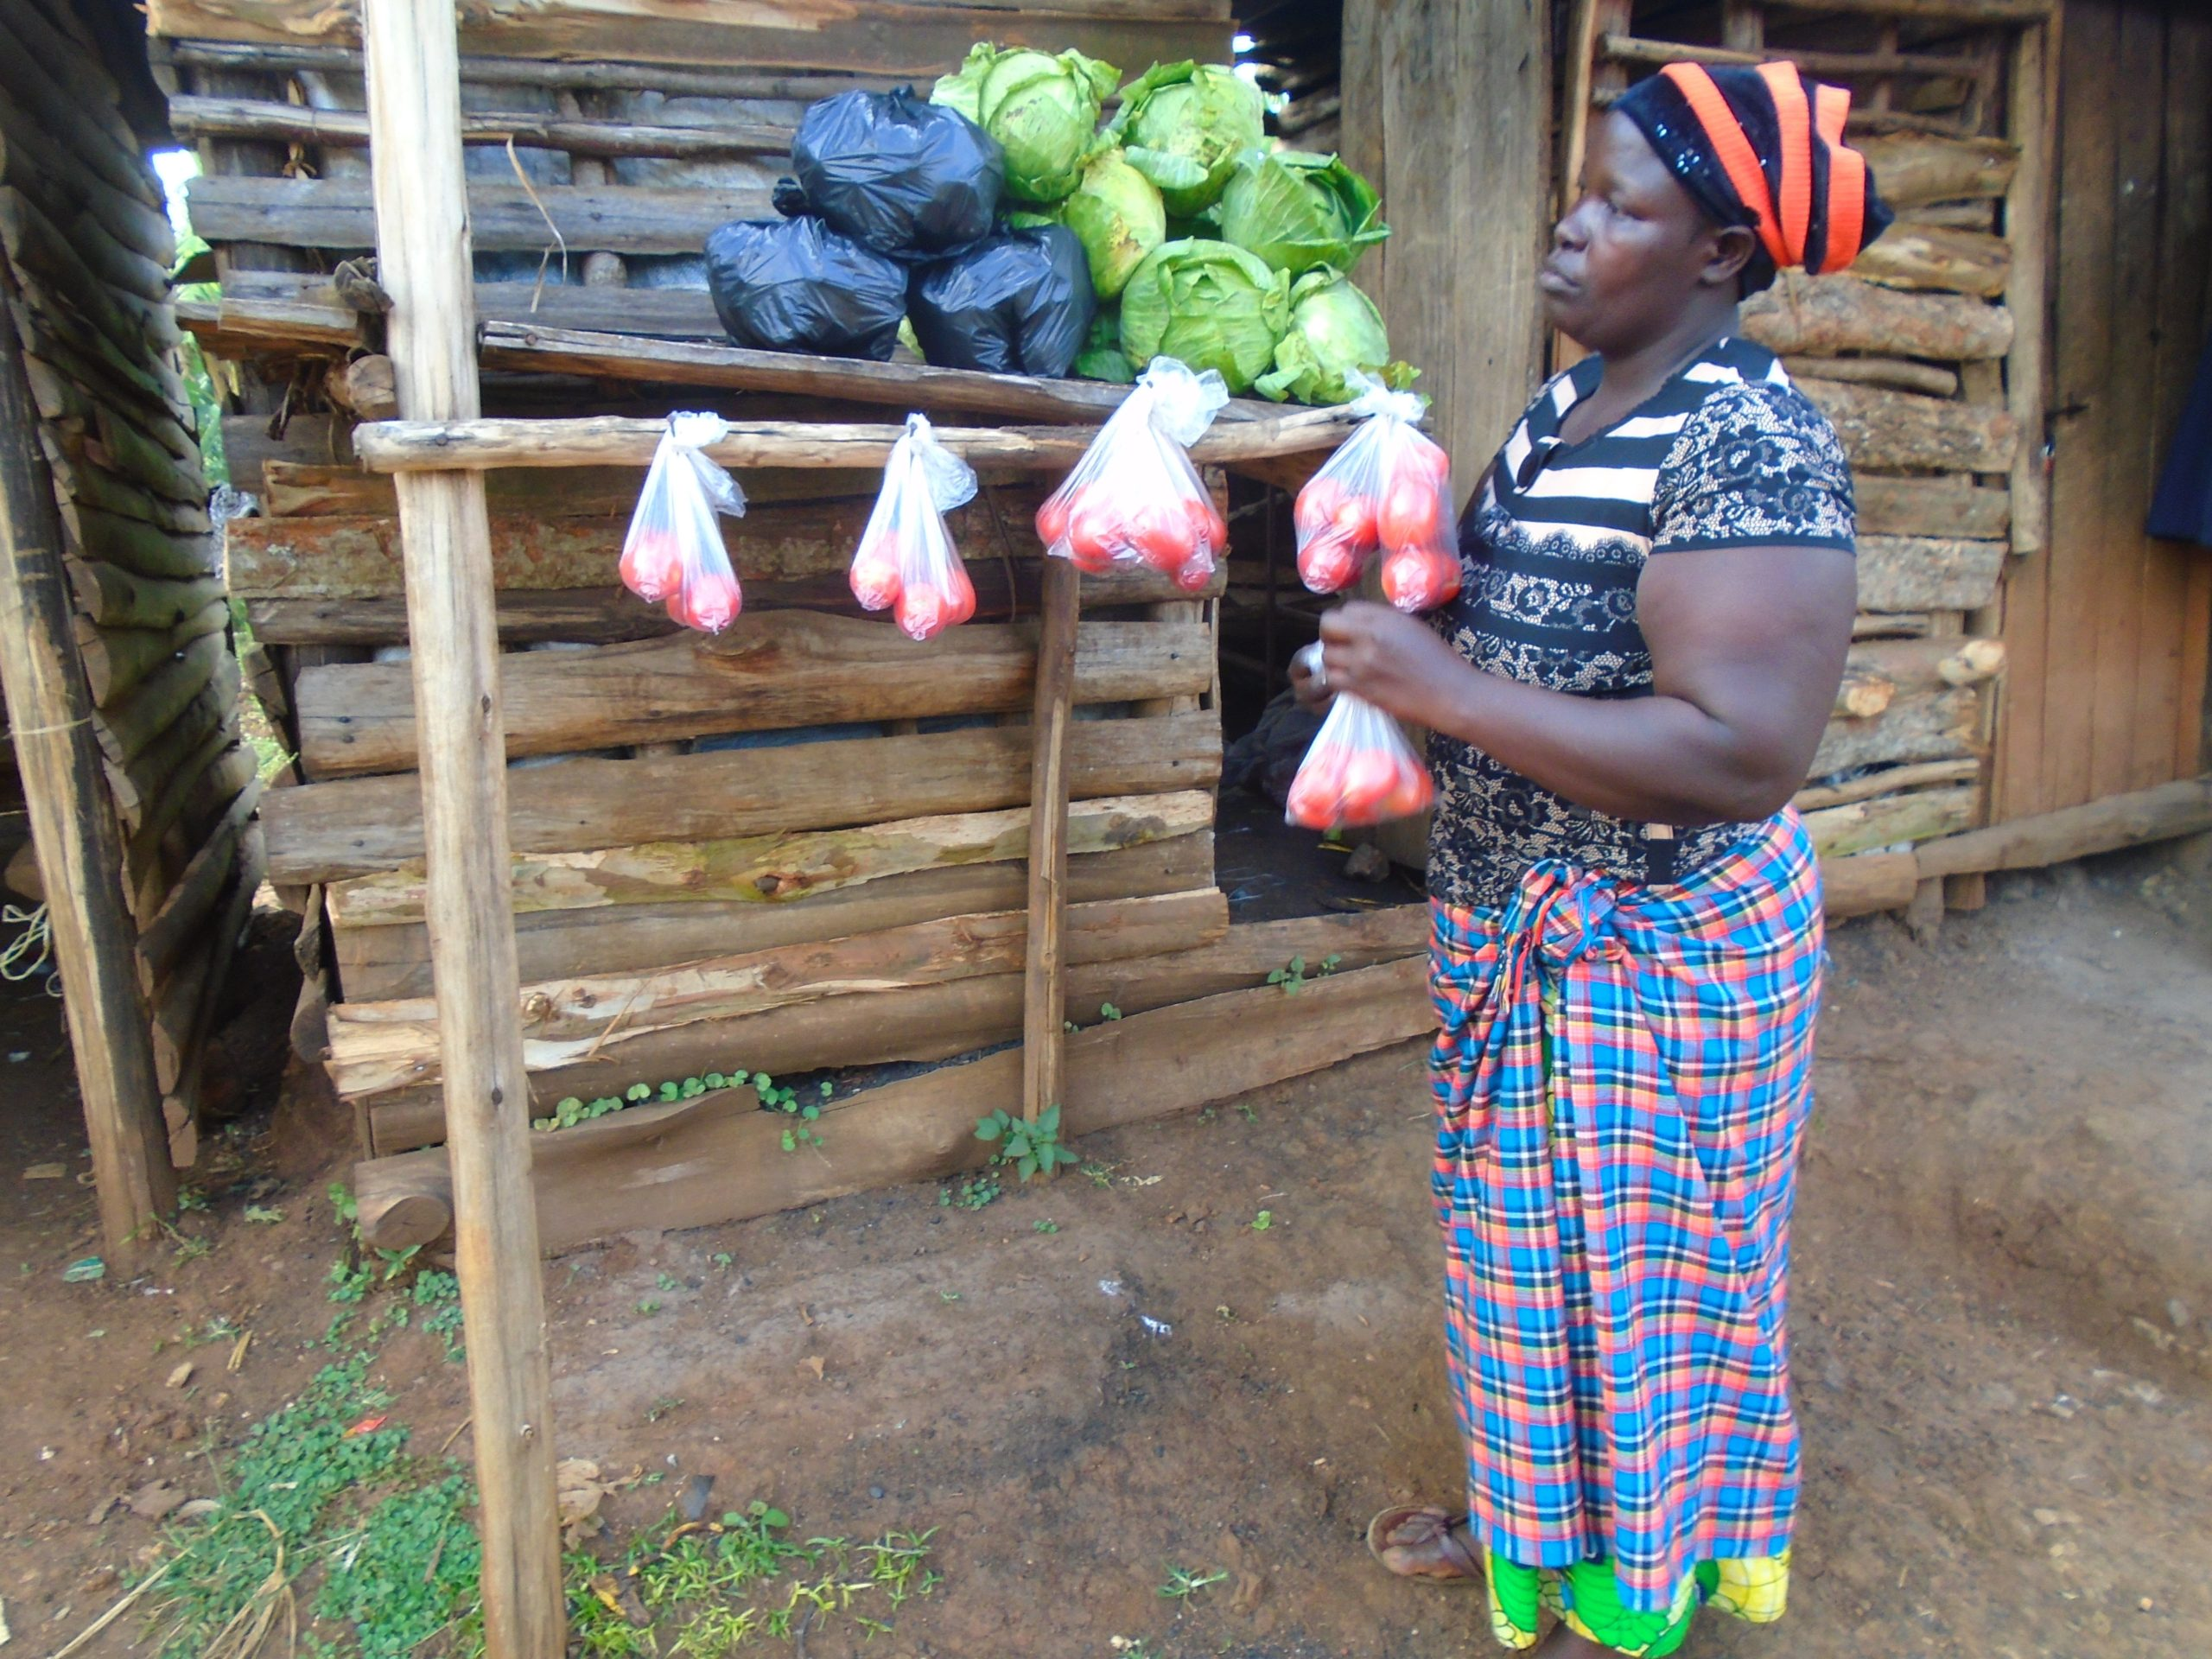 A vegetable business that has boosted the livelihood of a household